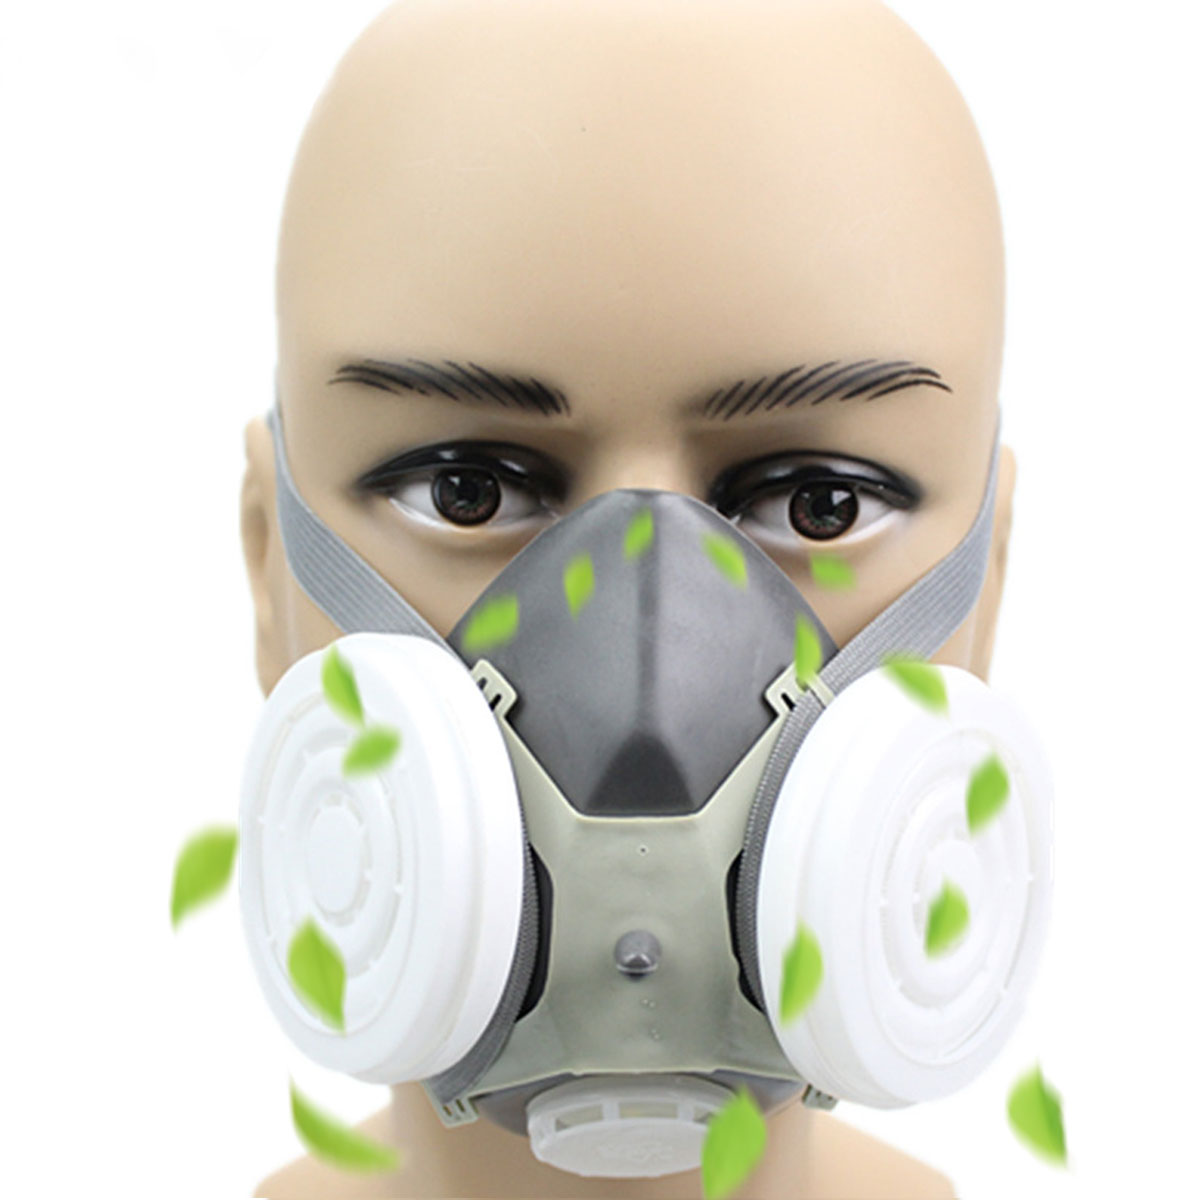 Industrial Safety Dust Mask Protection Gas Mask Respirator Suit Industry Spraying Paintting Workplace Safety Proof Respirator 3m 6200 half face respirator dust mask 9 in 1 suit industry spraying safety face piece gas mask respirator for paintting